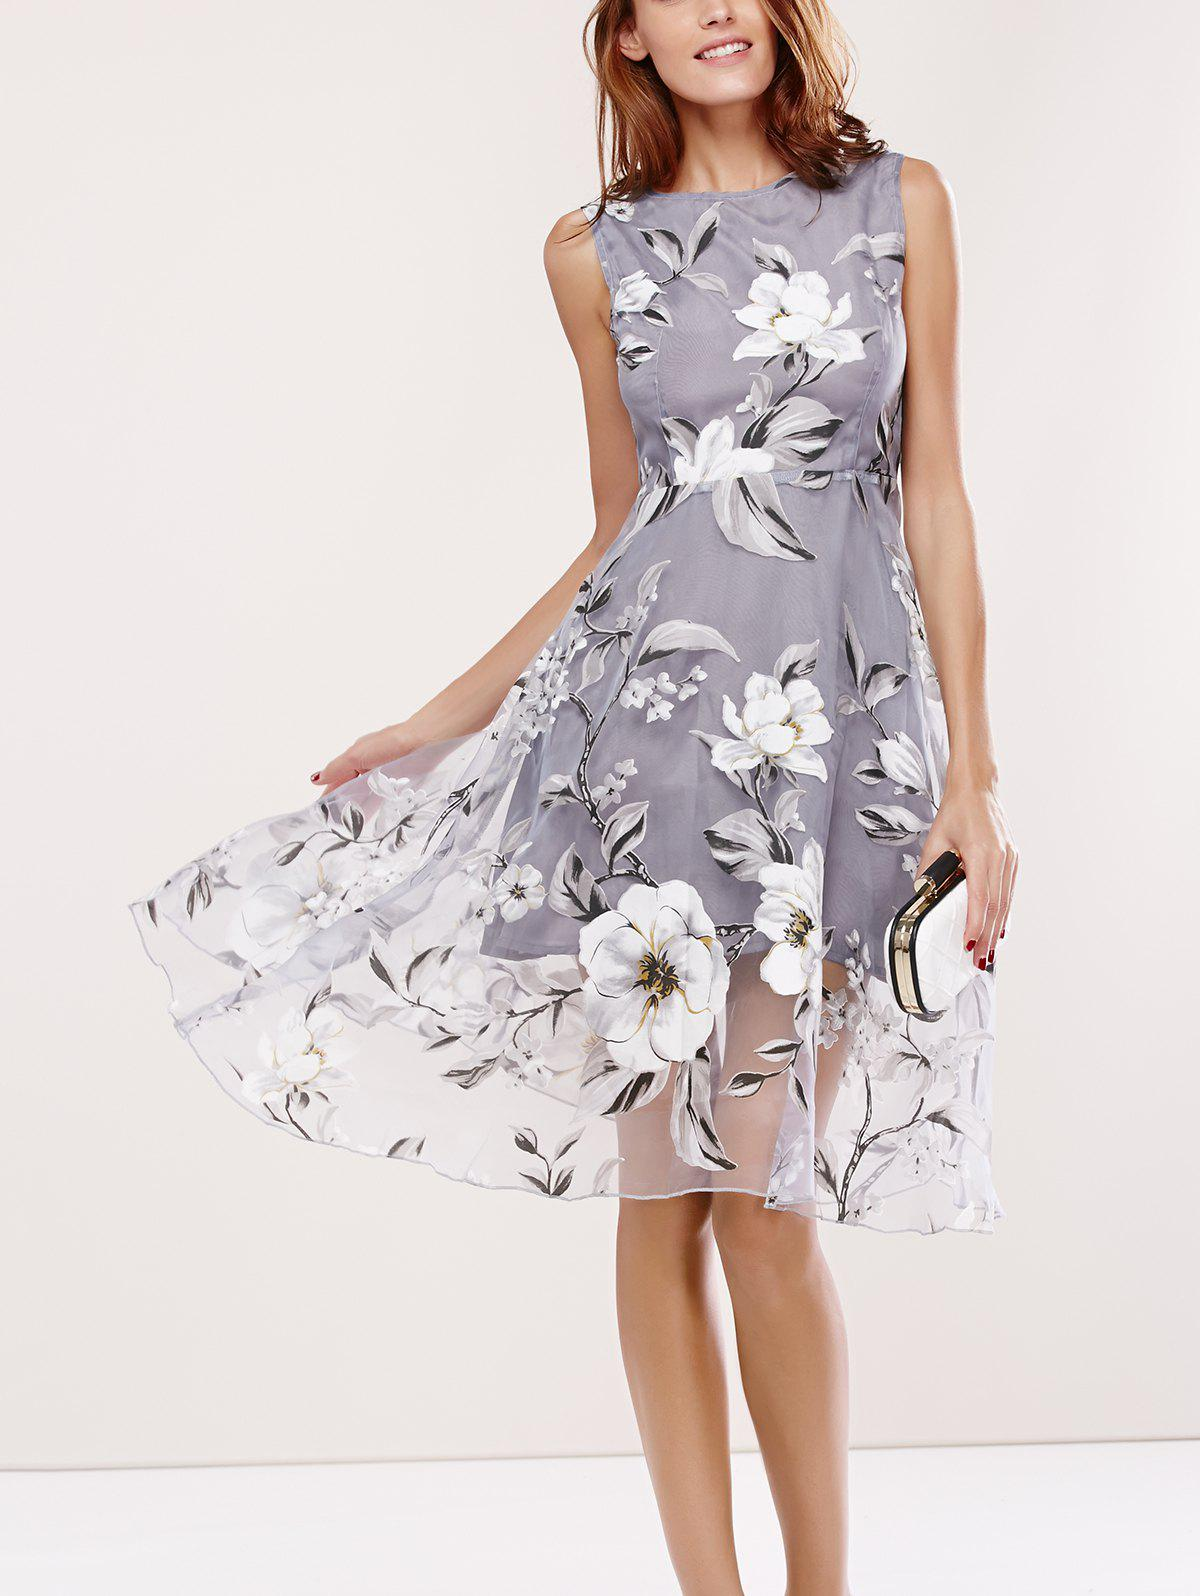 Sleeveless Round Neck Spliced Floral Print Dress - GRAY XL